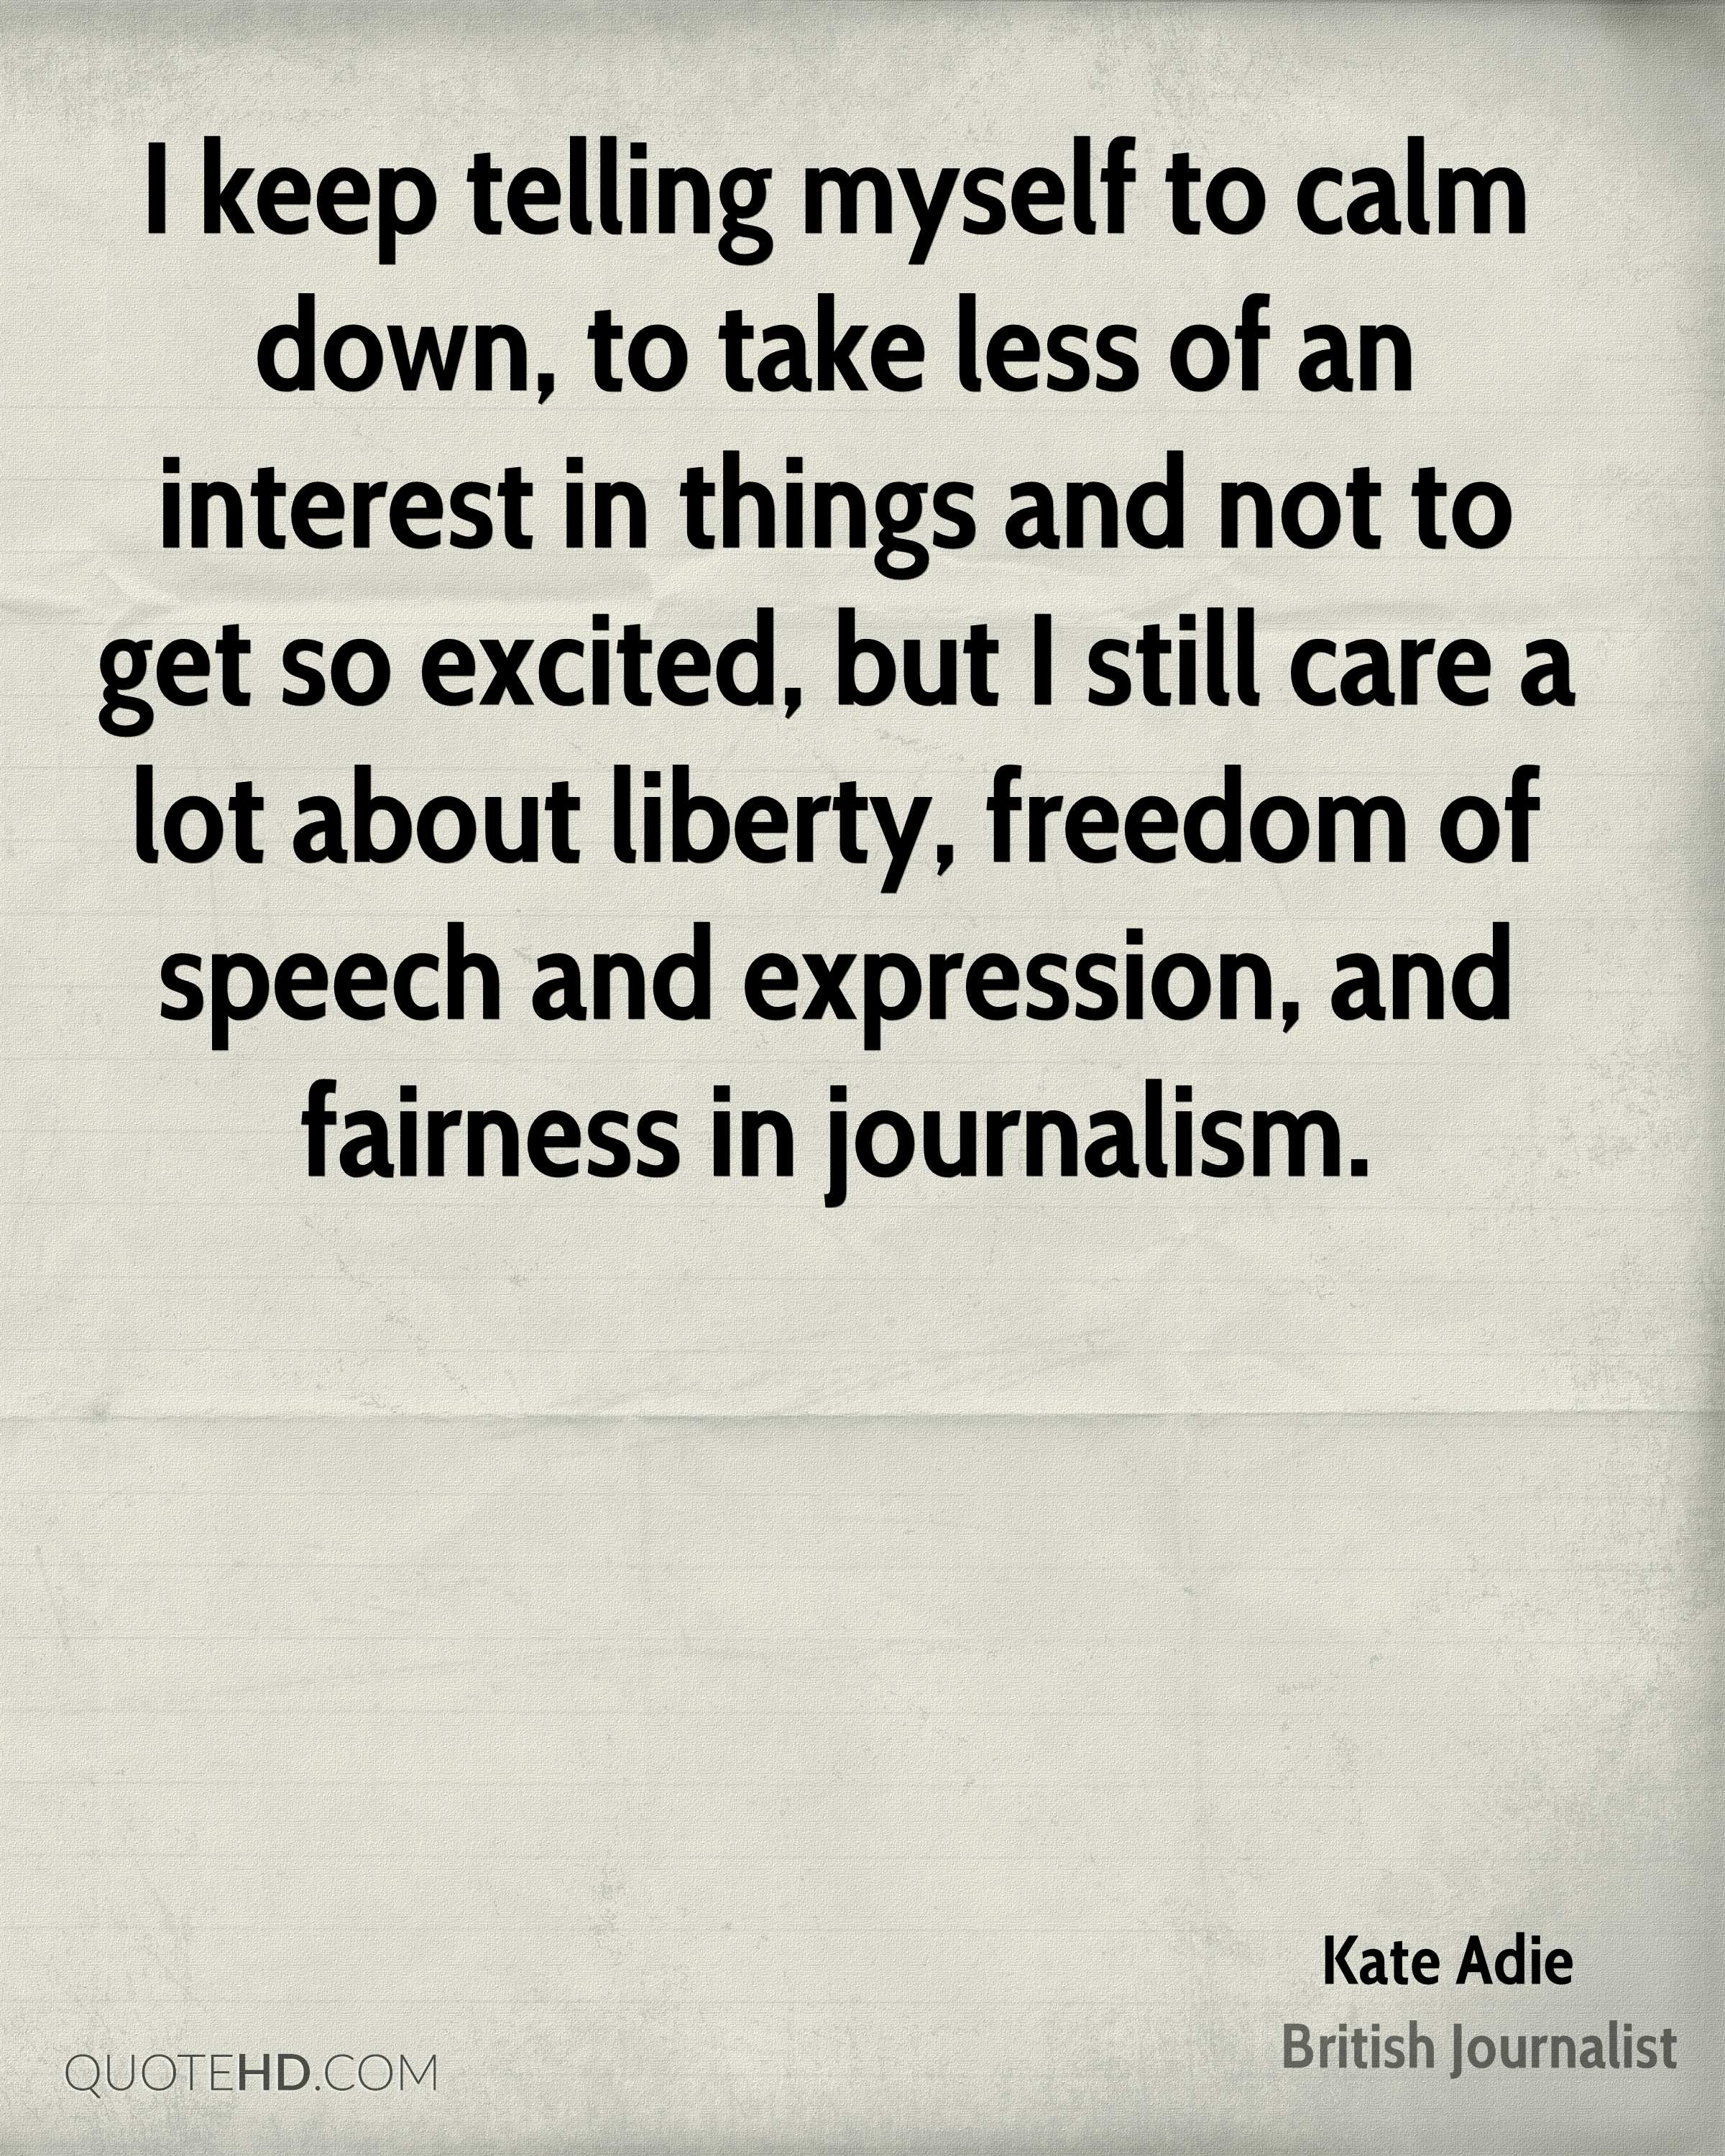 I keep telling myself to calm down, to take less of an interest in things and not to get so excited, but I still care a lot about liberty, freedom of speech and expression, and fairness in journalism.